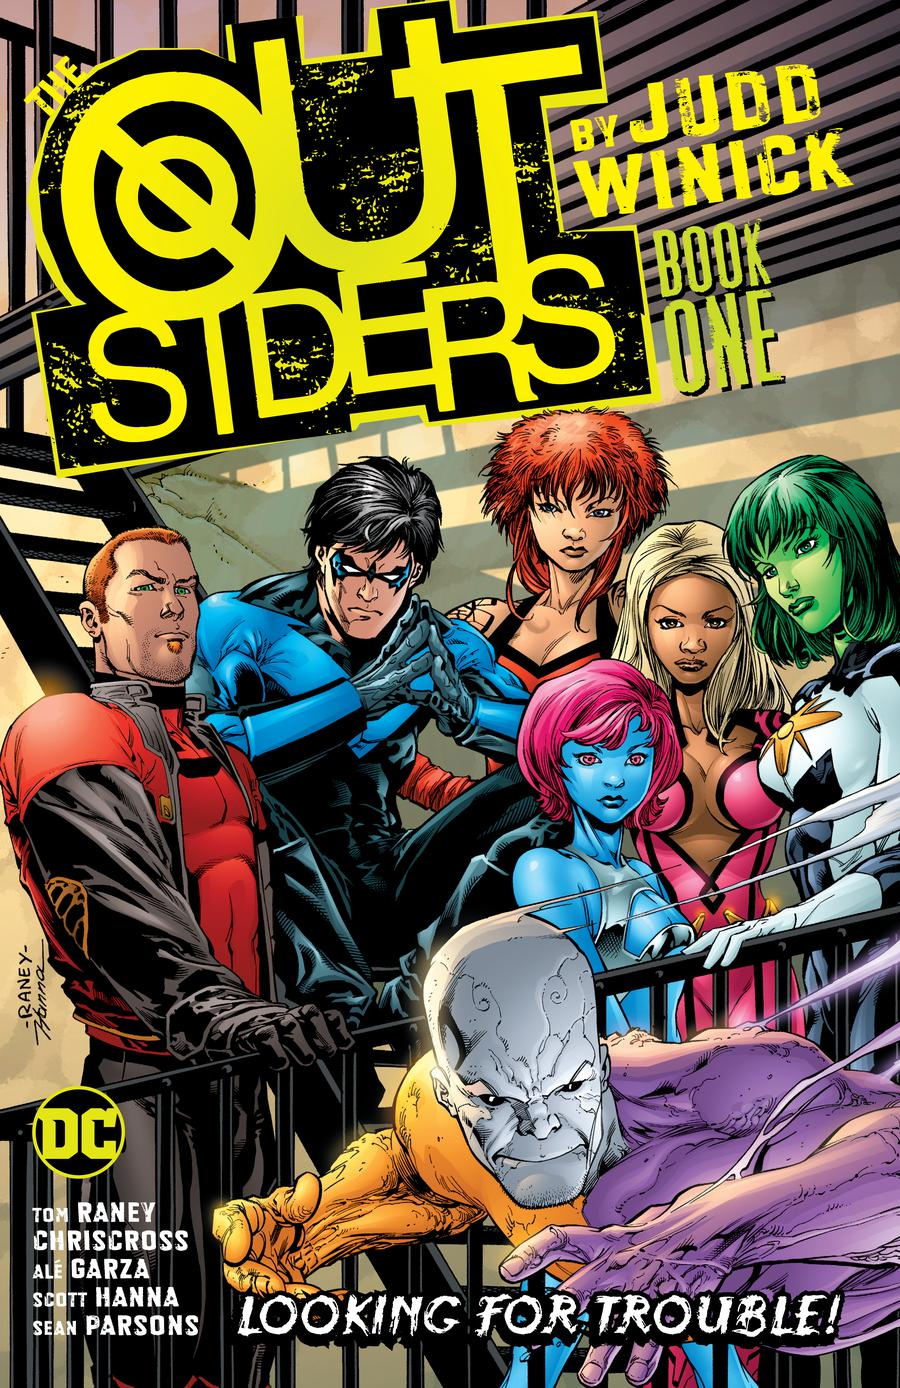 Outsiders By Judd Winick Book 1 TP